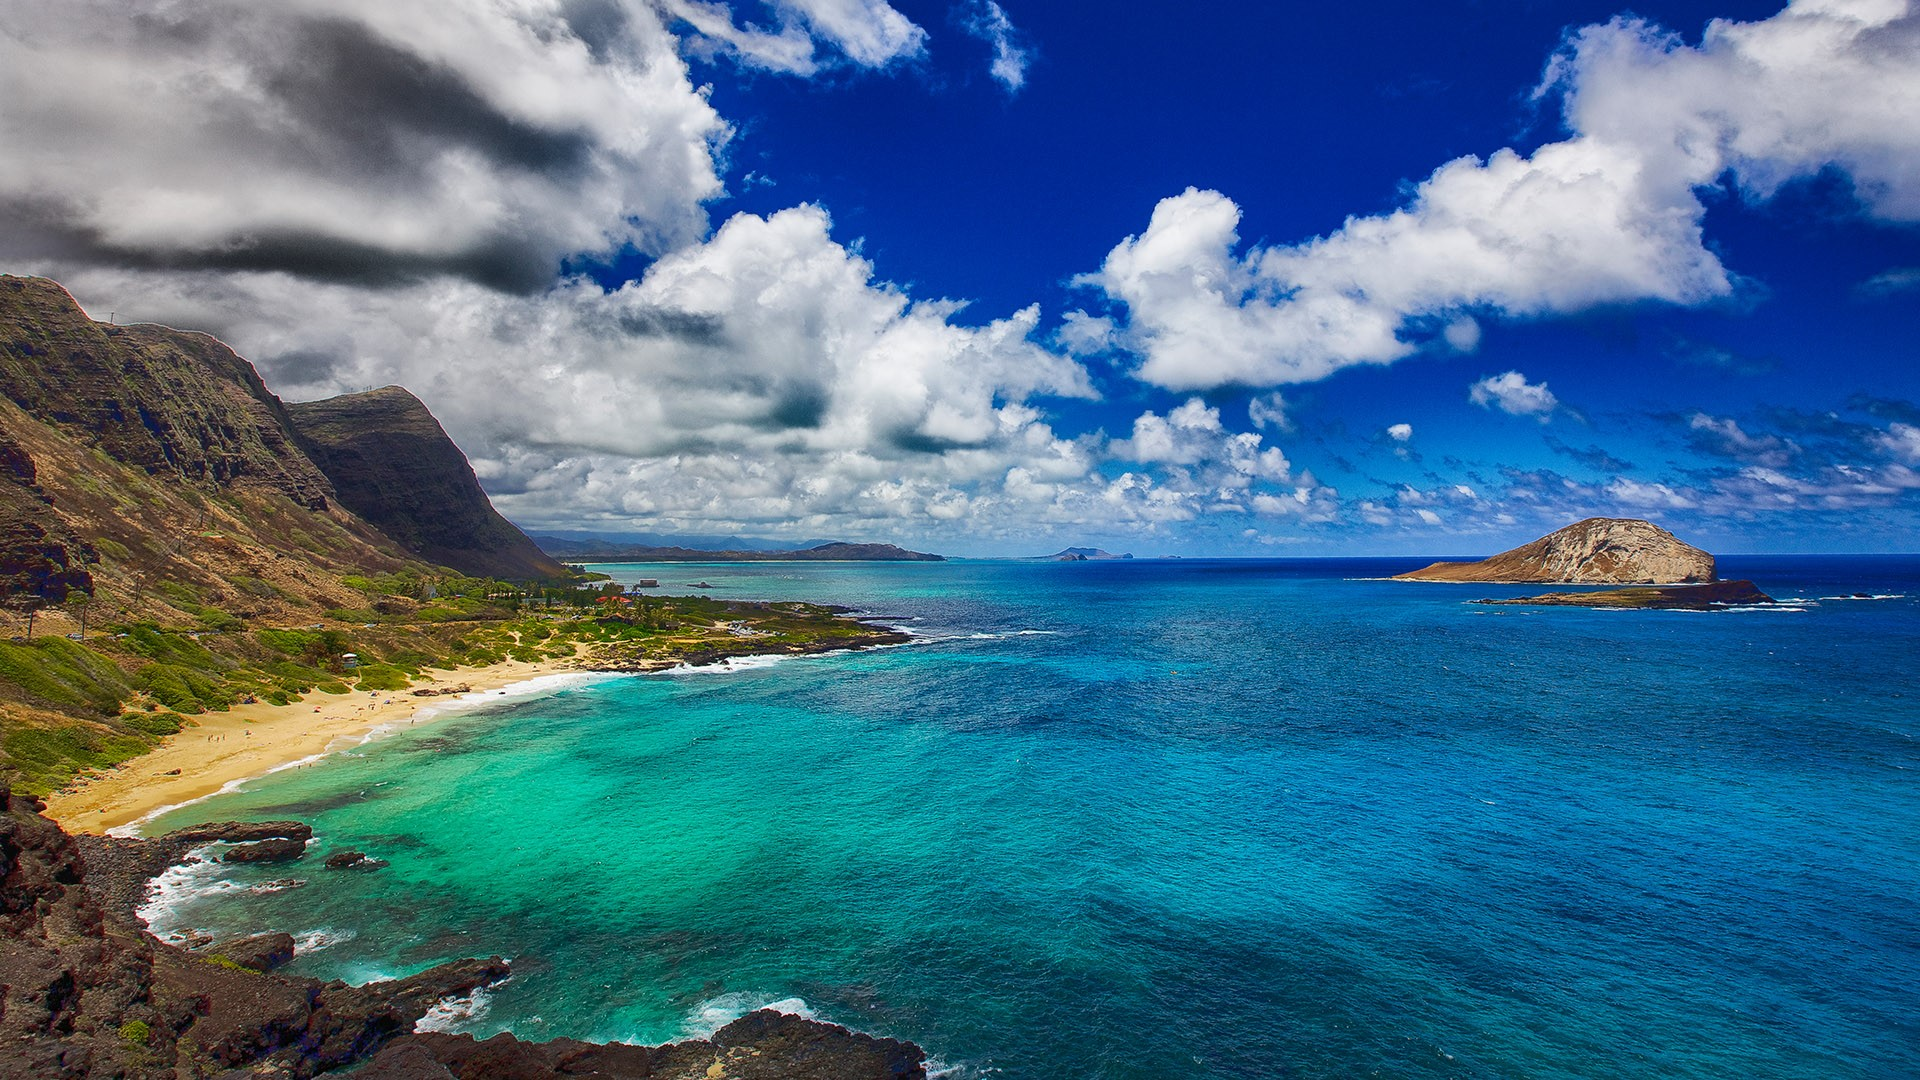 Rabbit Island And Makapu U Beach Park